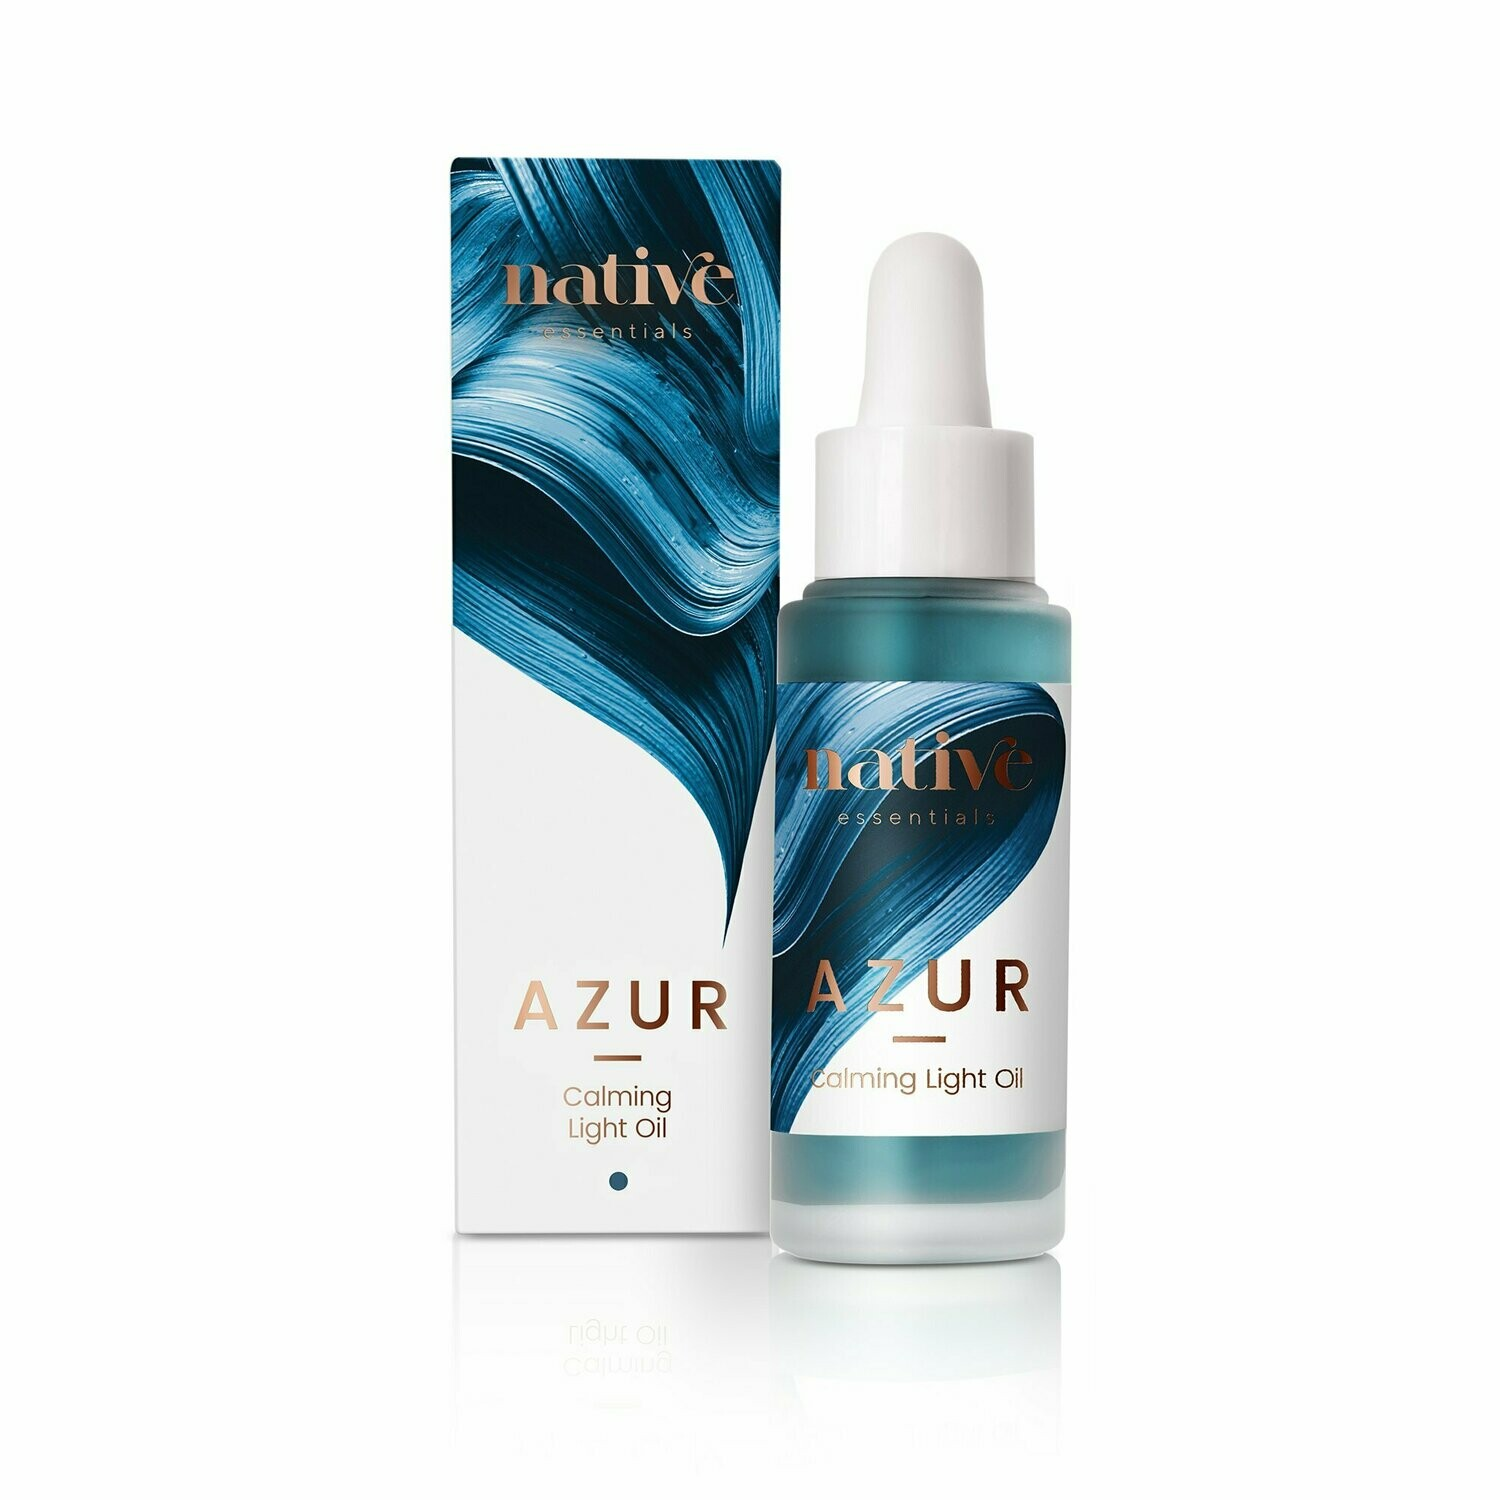 NATIVE ESSENTIALS AZUR - Calming Light Oil